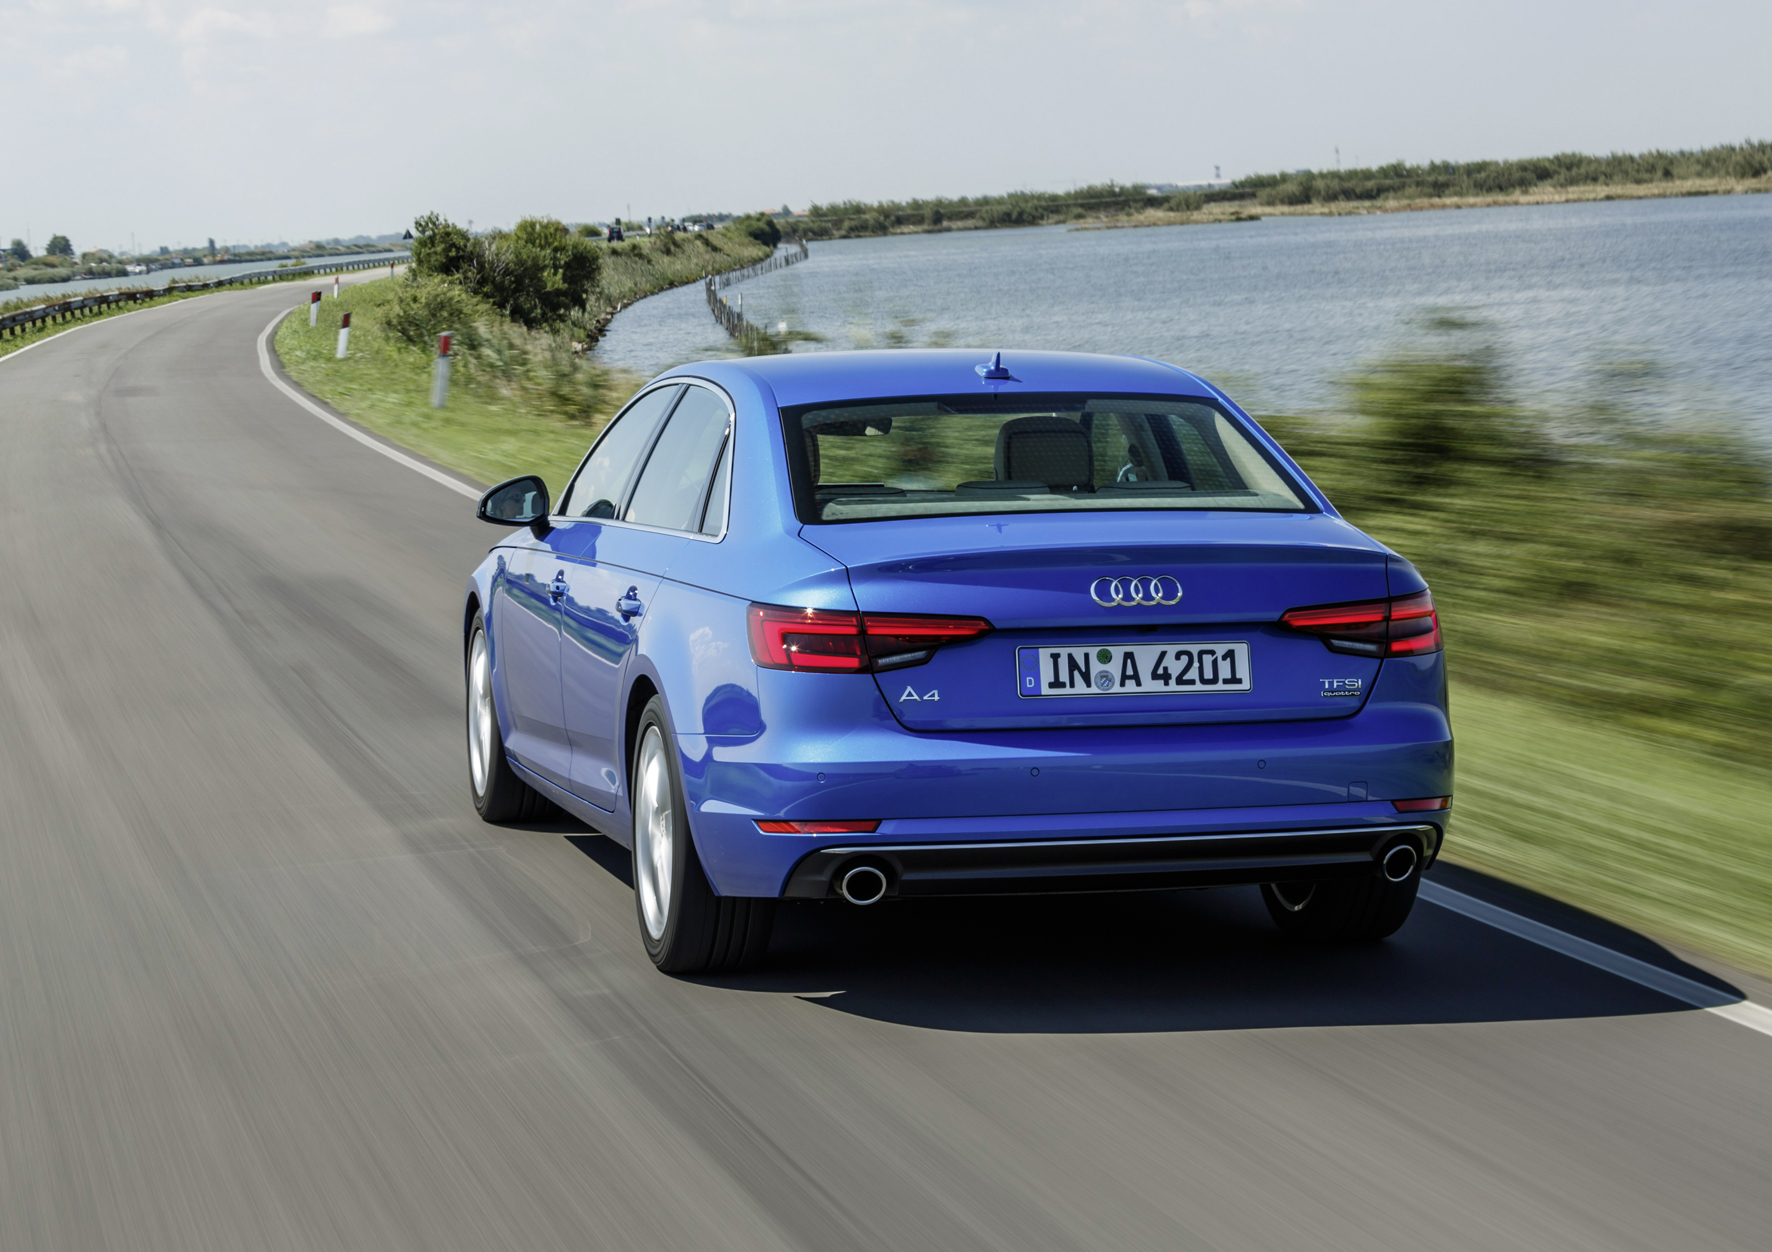 Slick design from Audi has Germans back on top | Press and